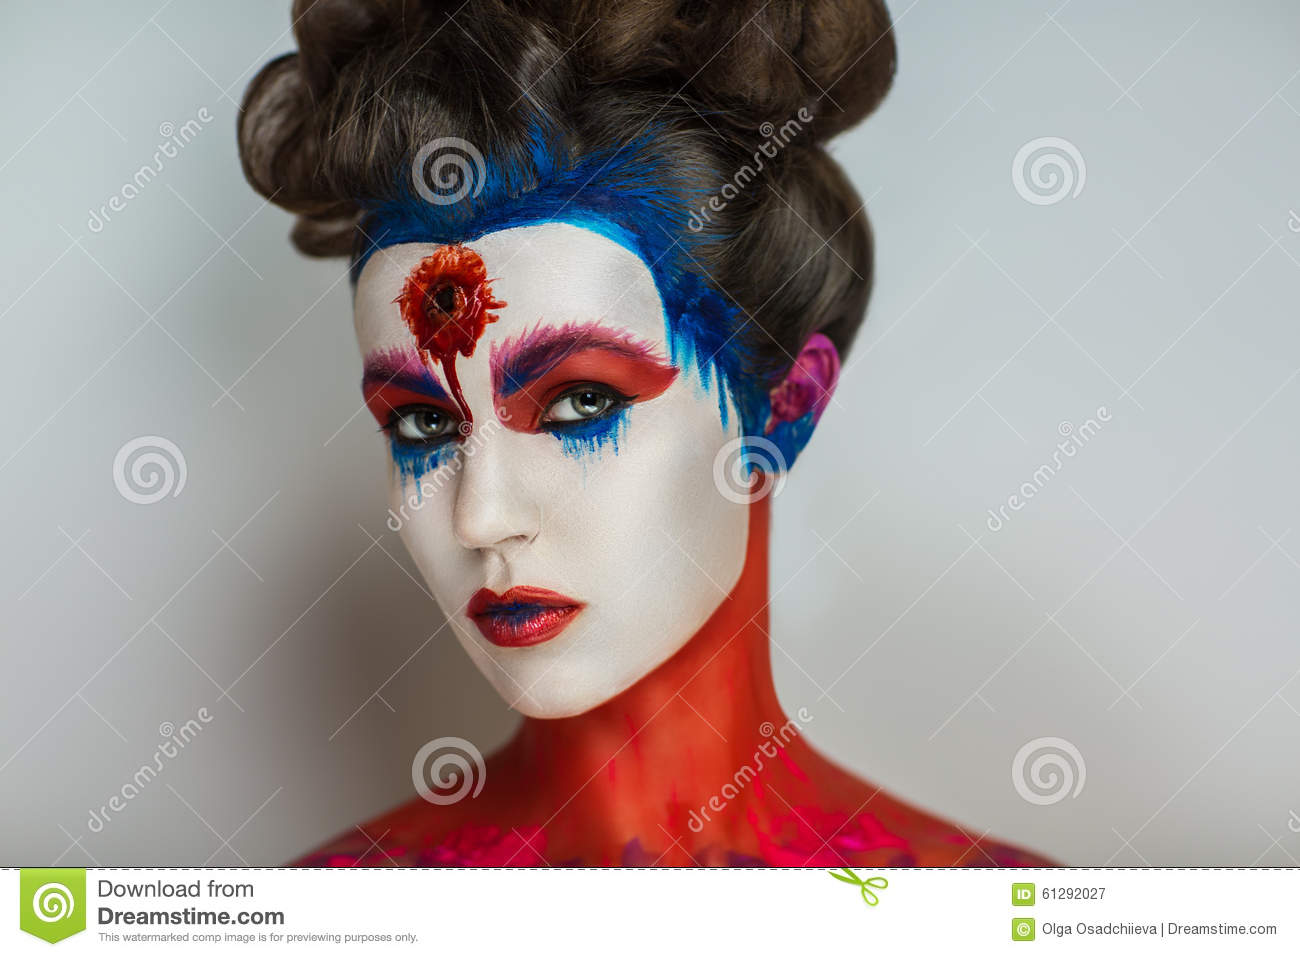 Crazy make up art stock image image of lady blue for Beautiful creative art